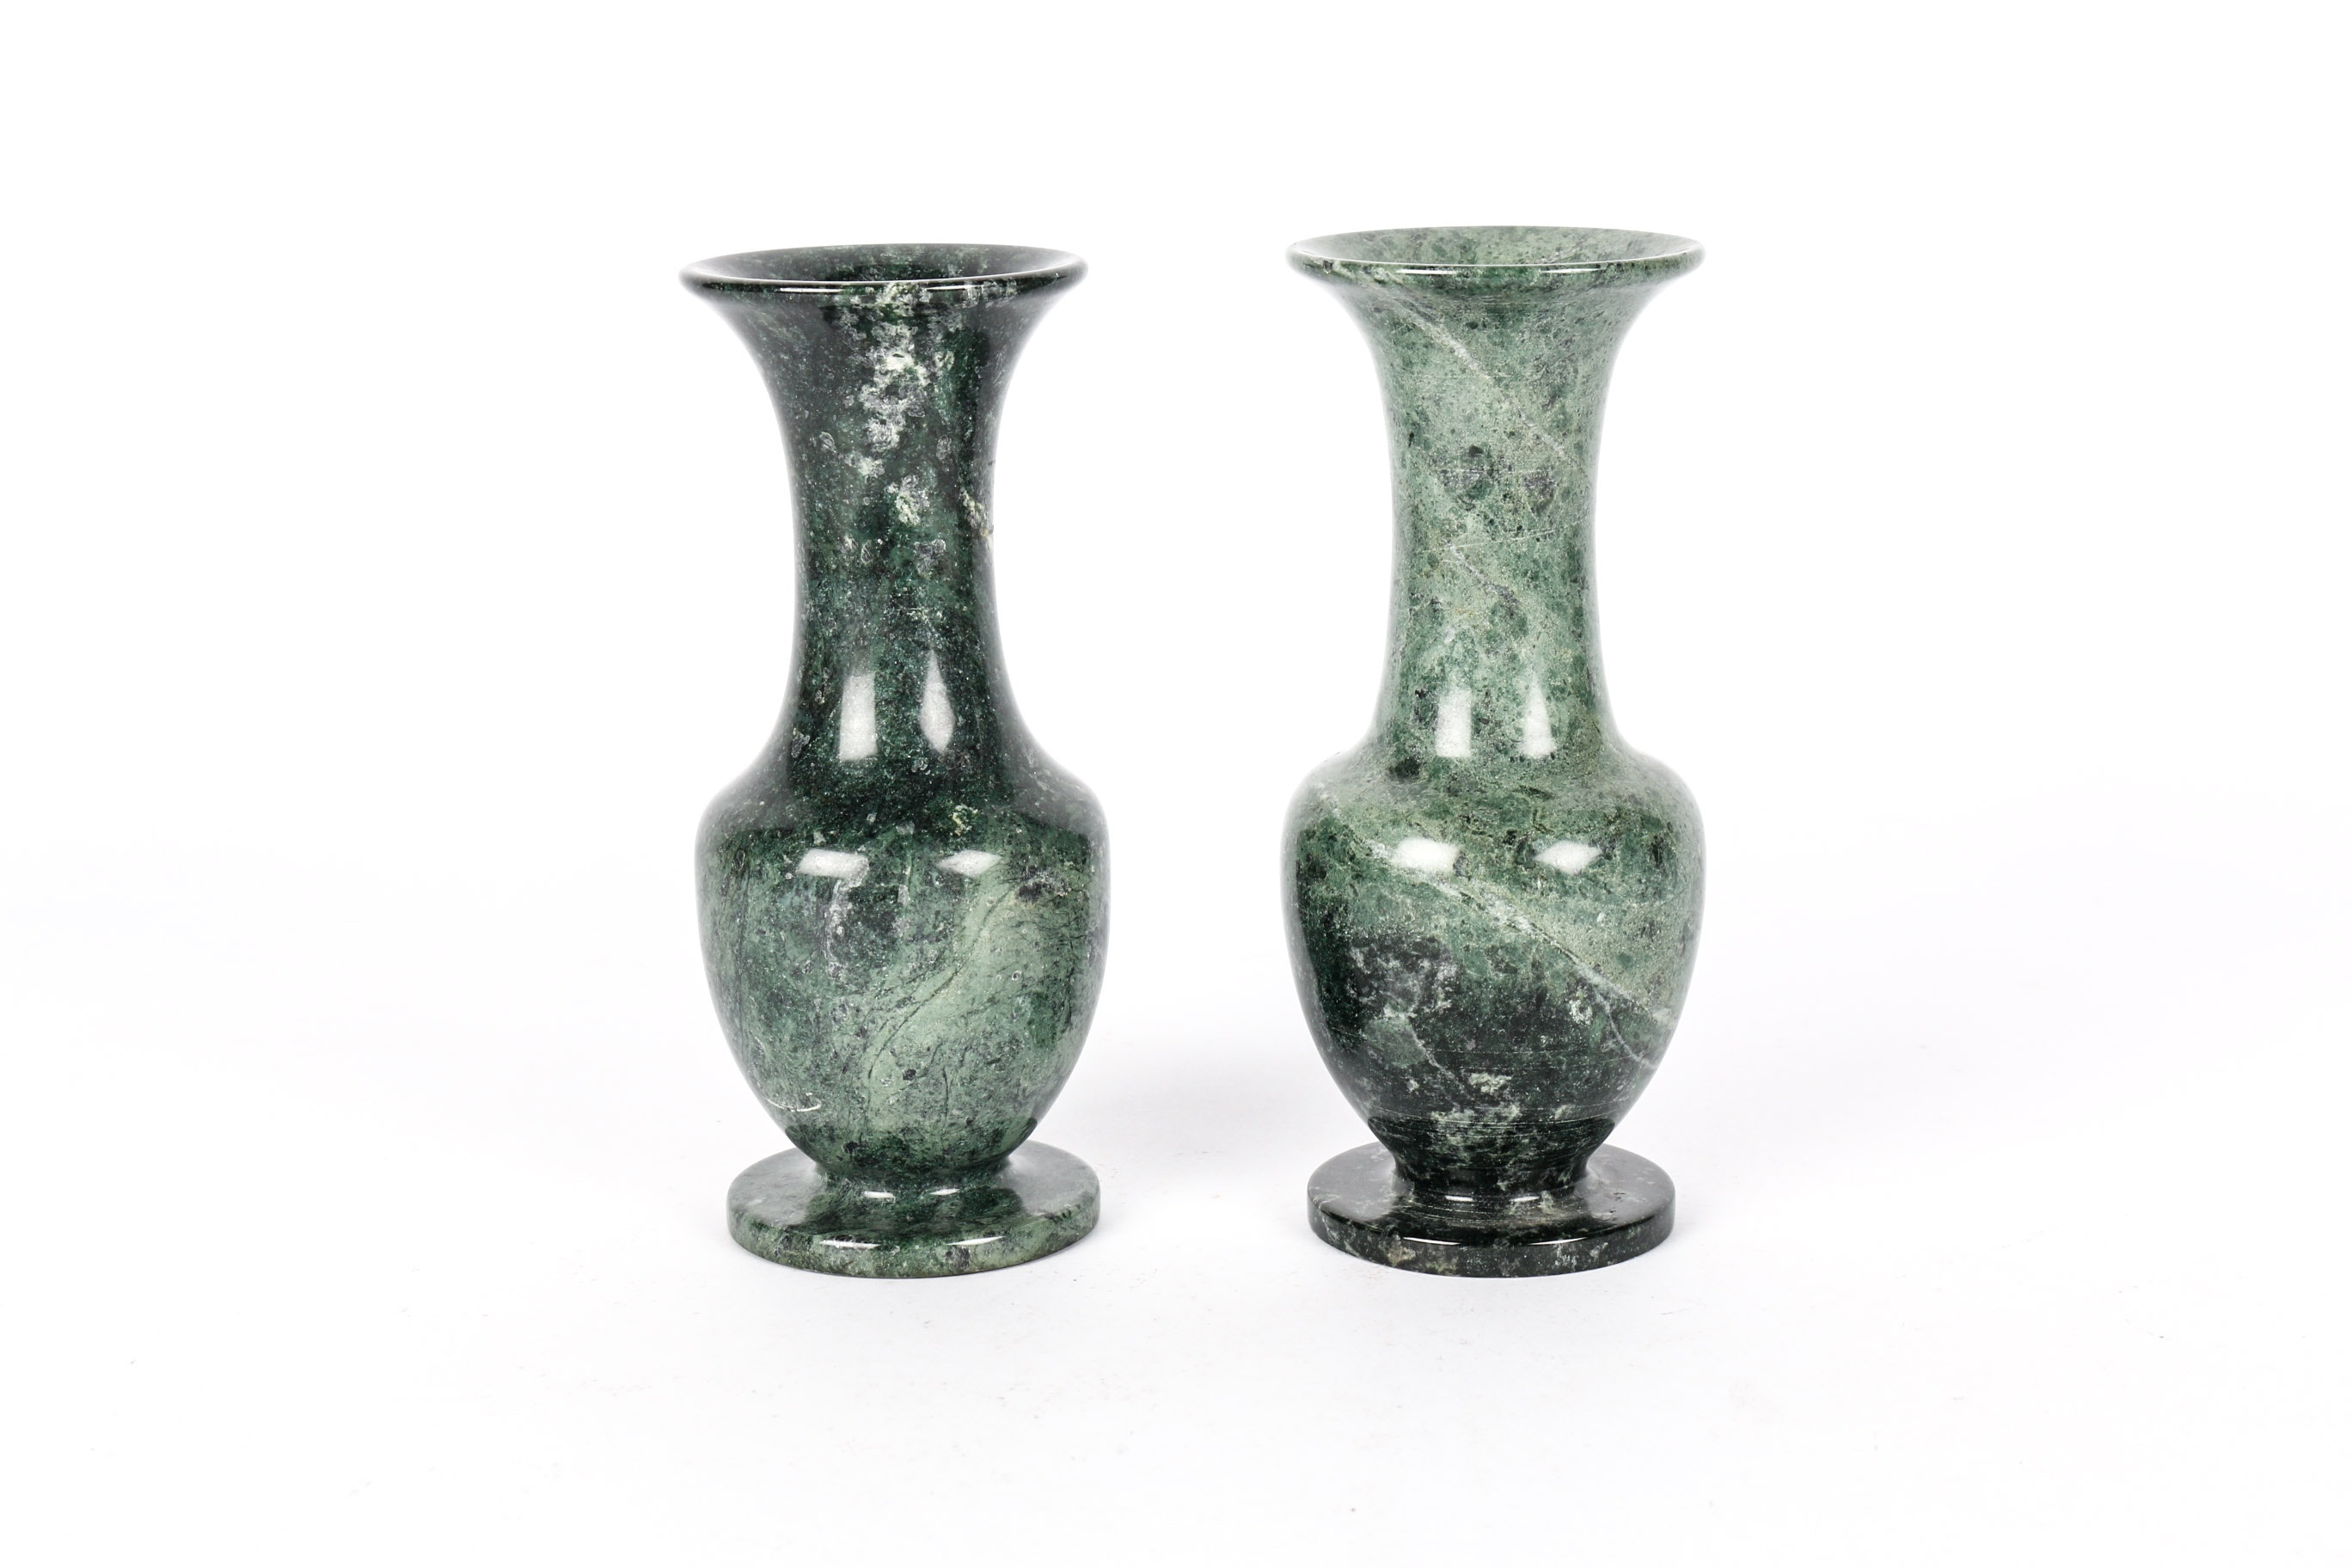 Two Taiwanese Green Marble Bud Vases